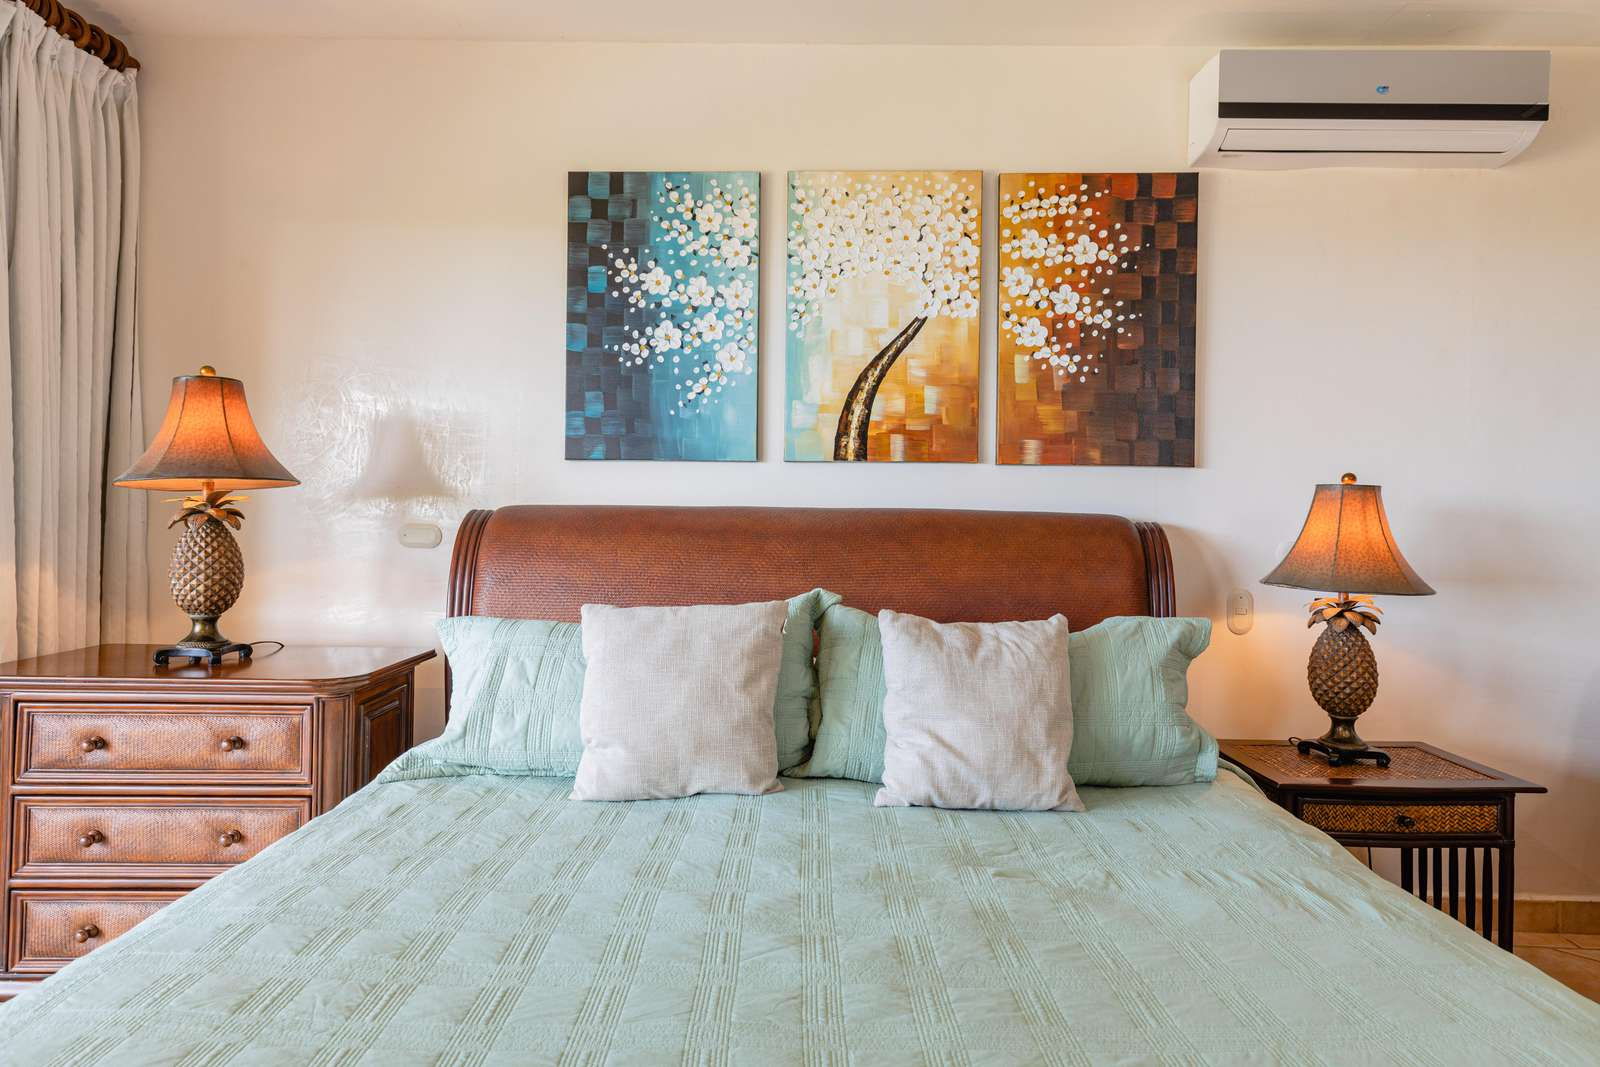 Master bedroom, king bed, access to ocean view balcony